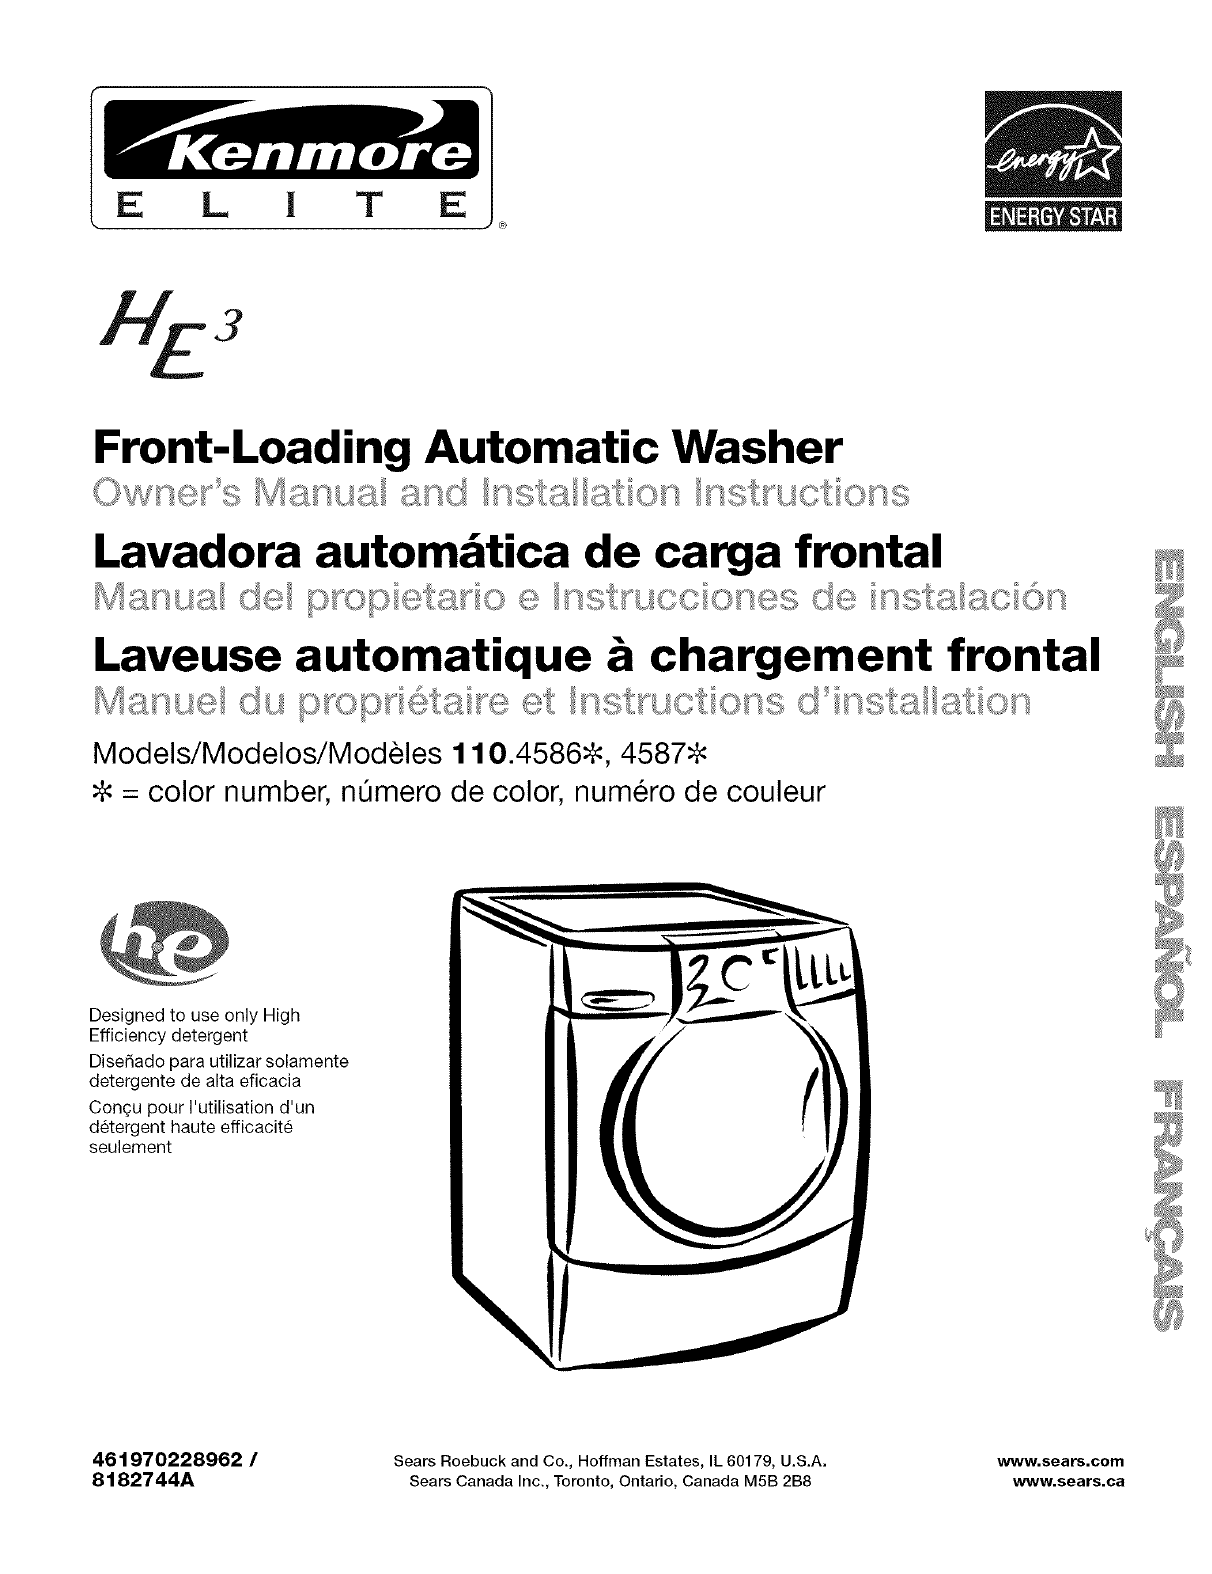 Kenmore elite 11045862402 user manual residential washer manuals and kenmore elite 11045862402 user manual residential washer manuals and guides l0608122 solutioingenieria Image collections